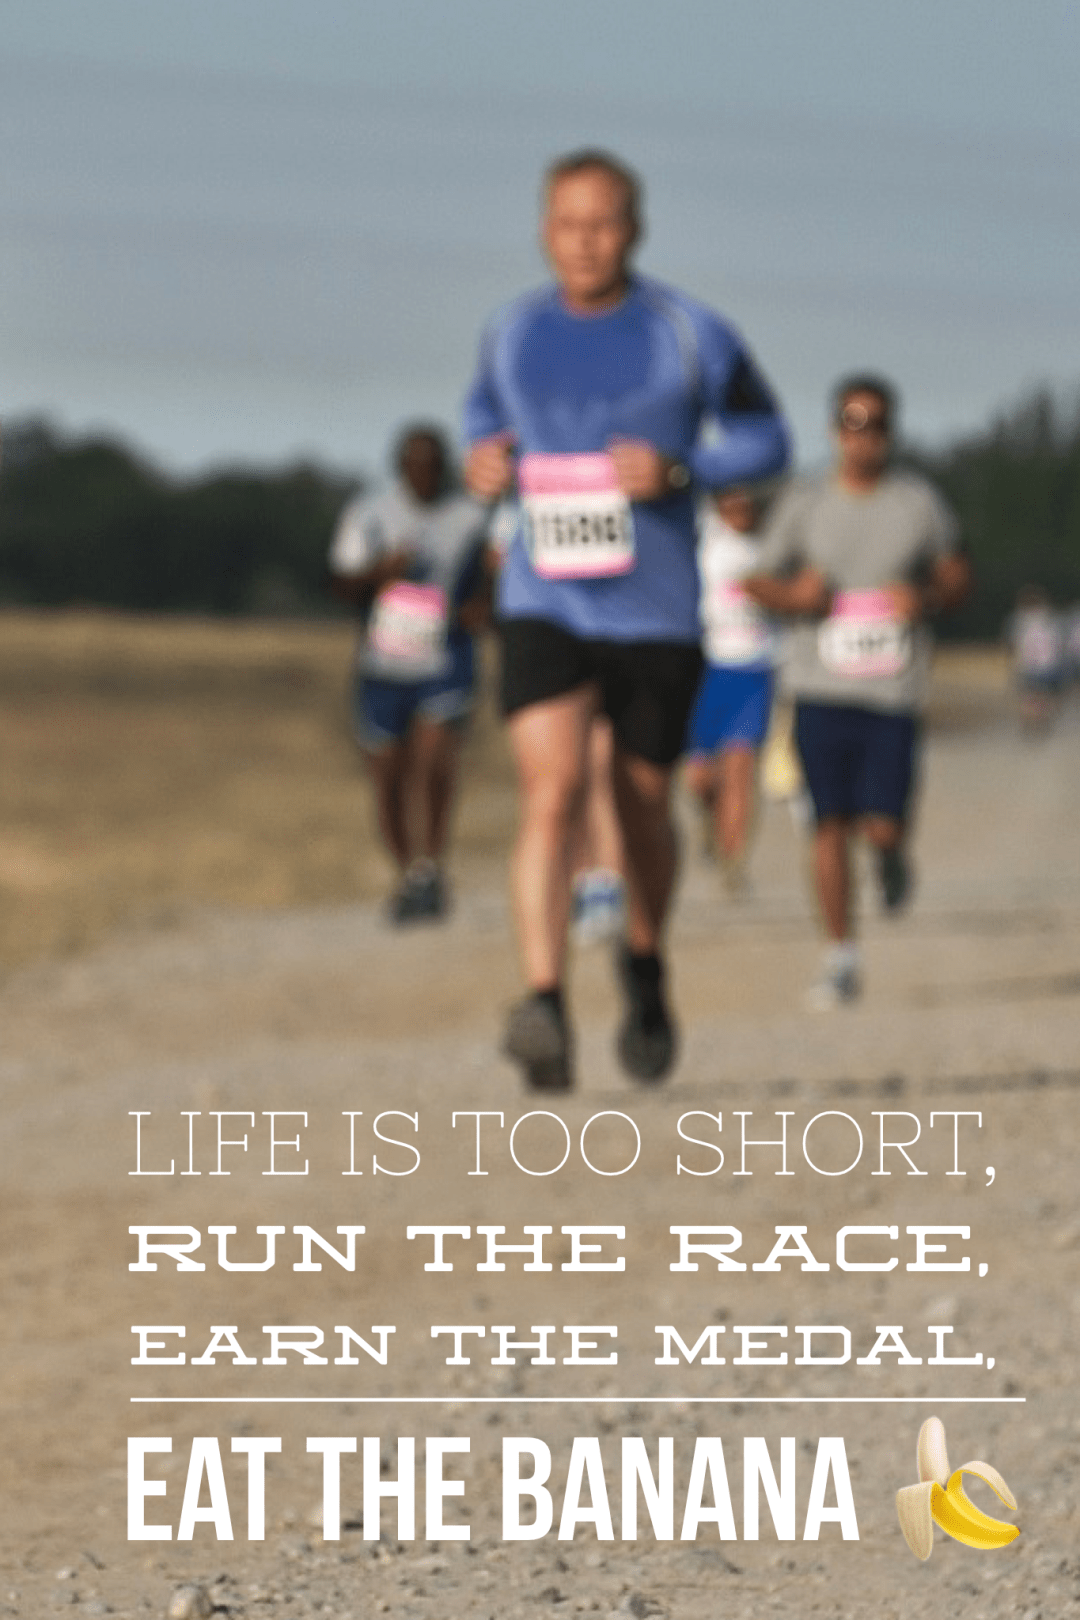 Life is too short,run the race, earn the medal eat the banana!